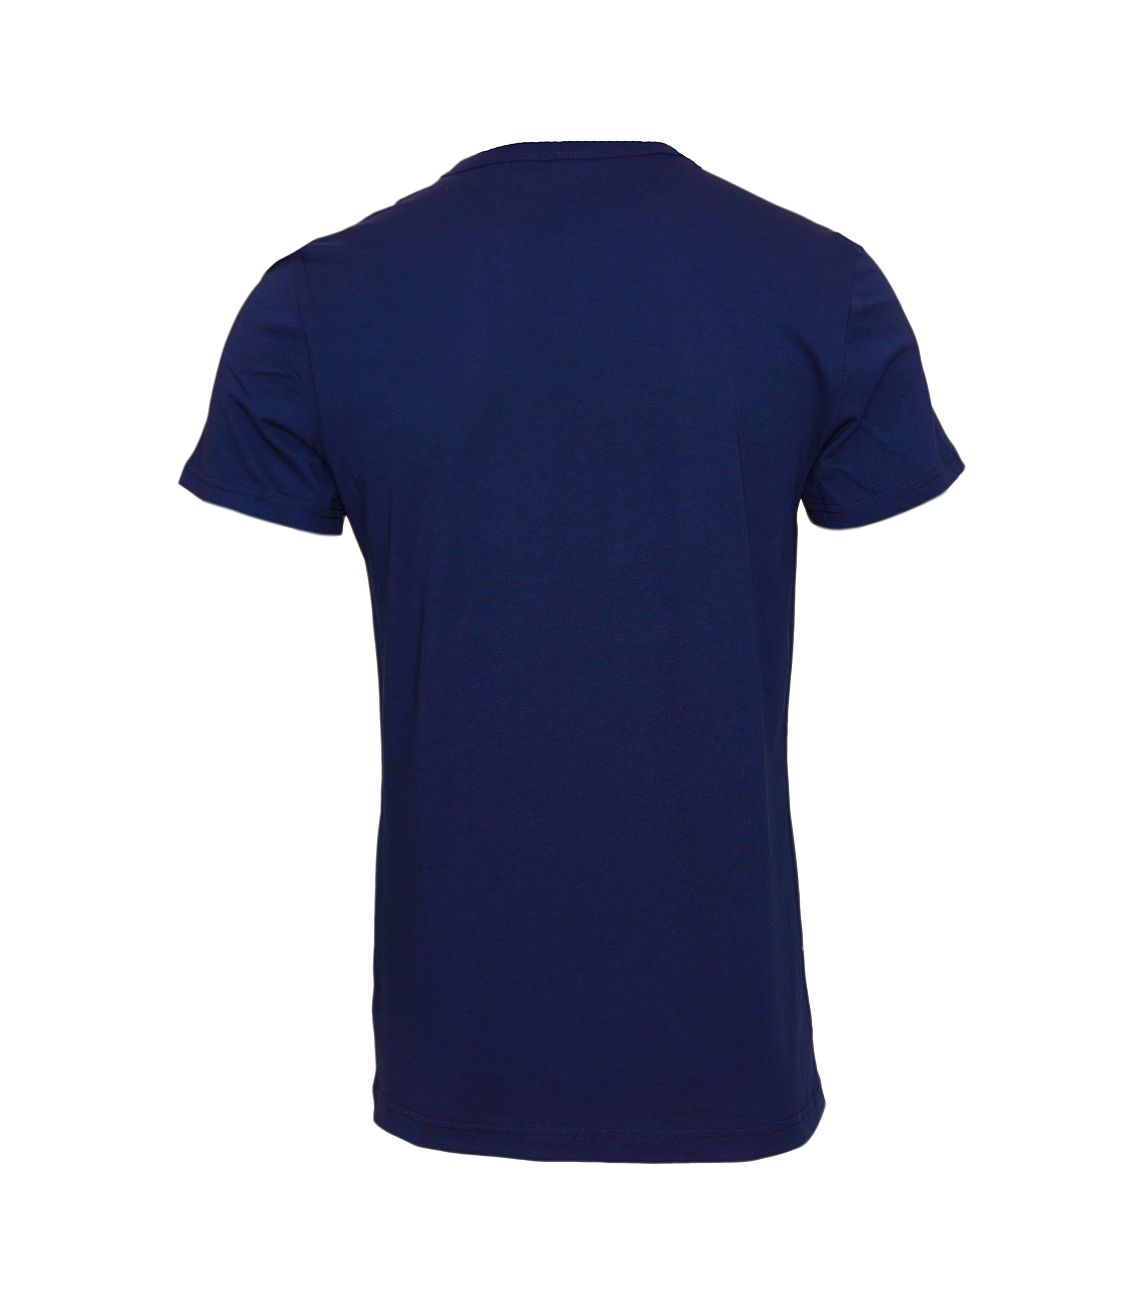 G-Star RAW T-Shirt Holorn rt D08512.8415.6067 81 Sartho Blue F18-GST1